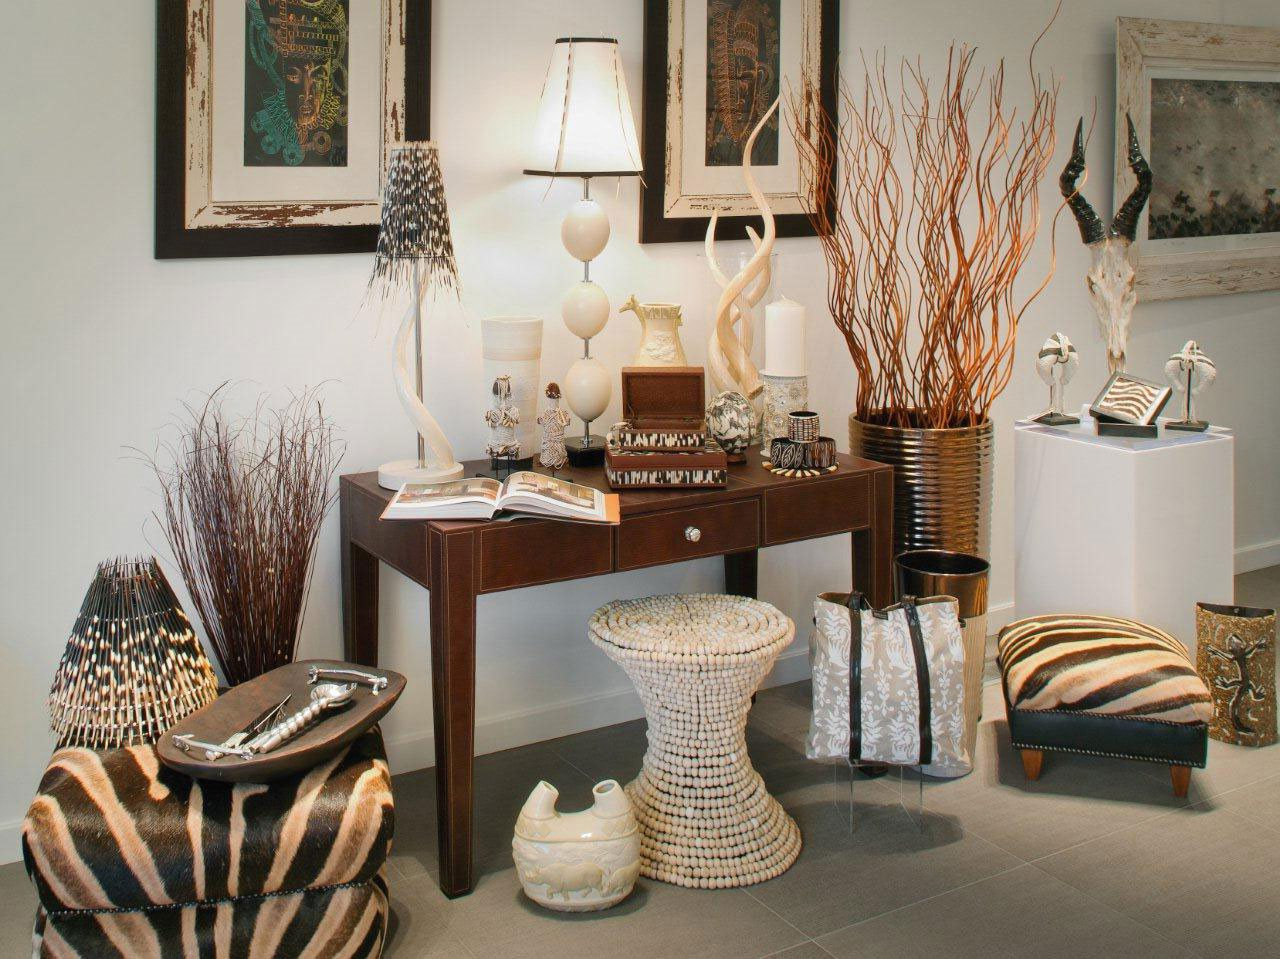 Safari Room Decor Ideas